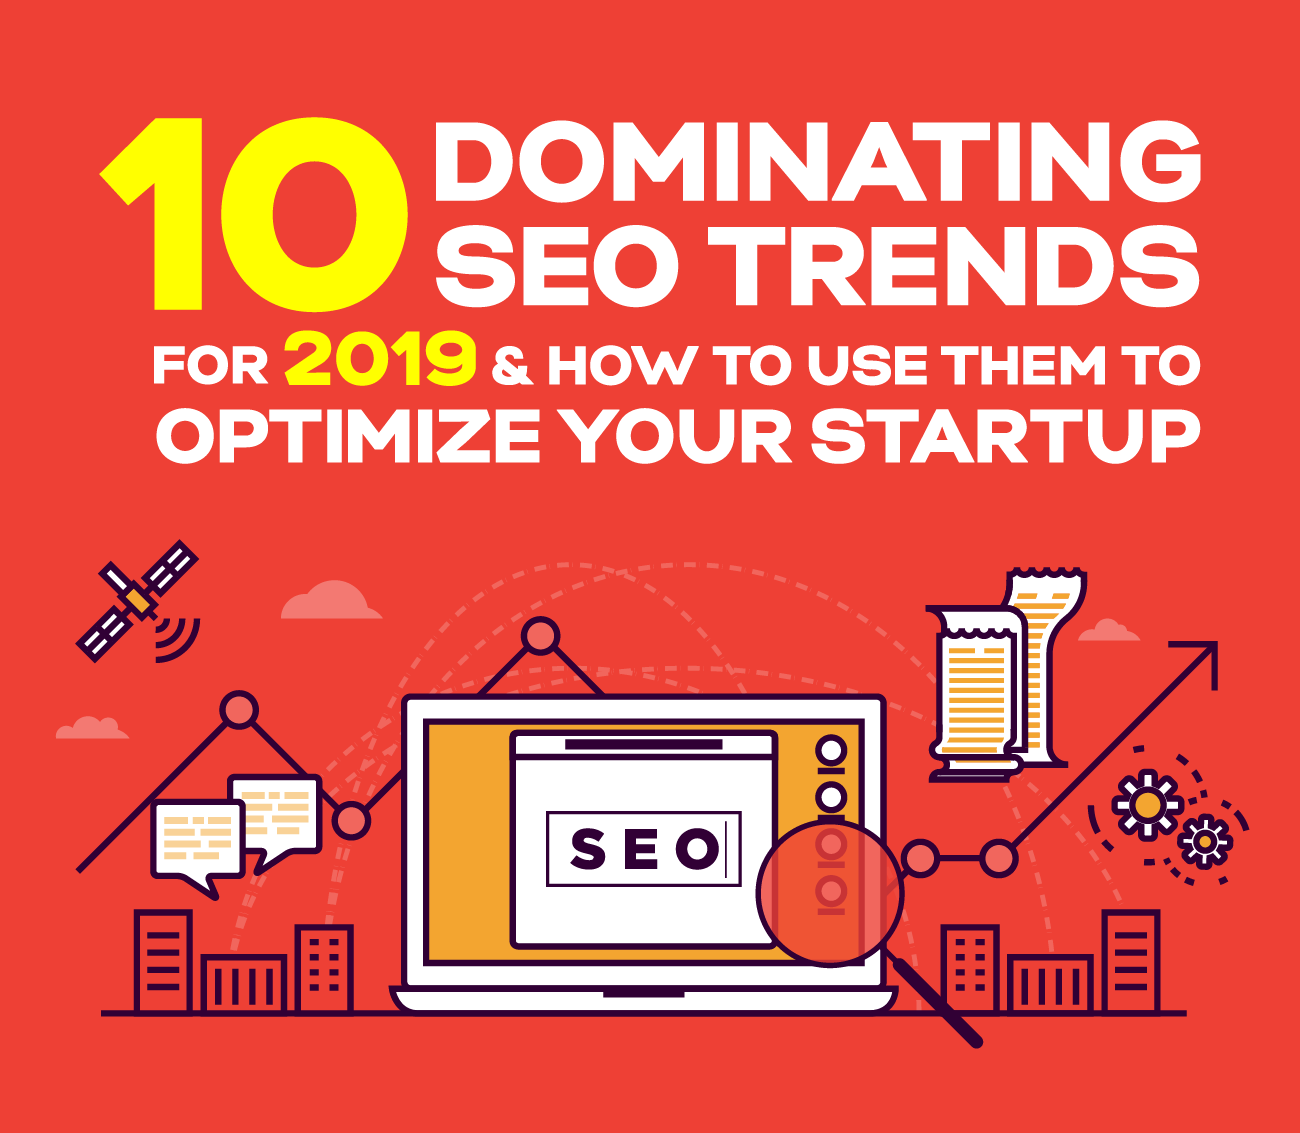 SEO Trends 2019 for Startup Success (infographic)